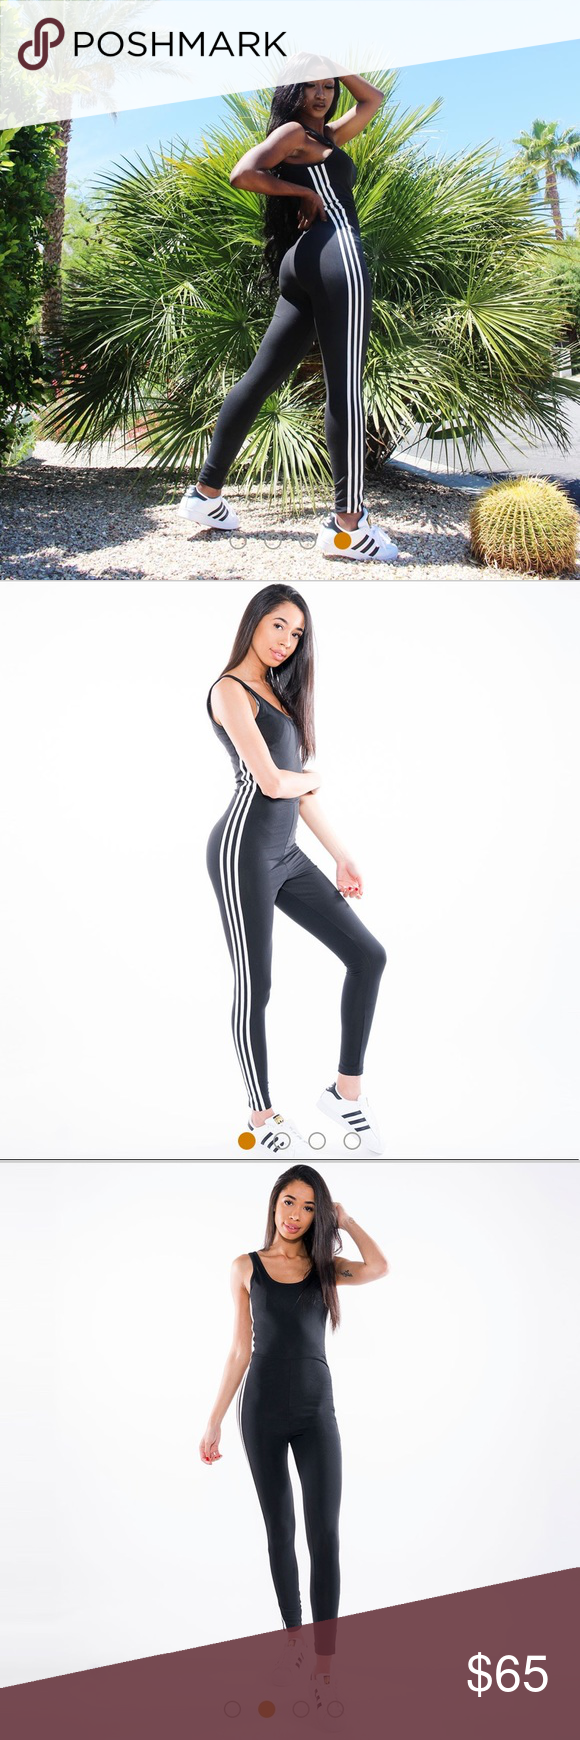 Nwt Adidas Jumpsuit Nwt In 2018 Clothes For Sale Pinterest